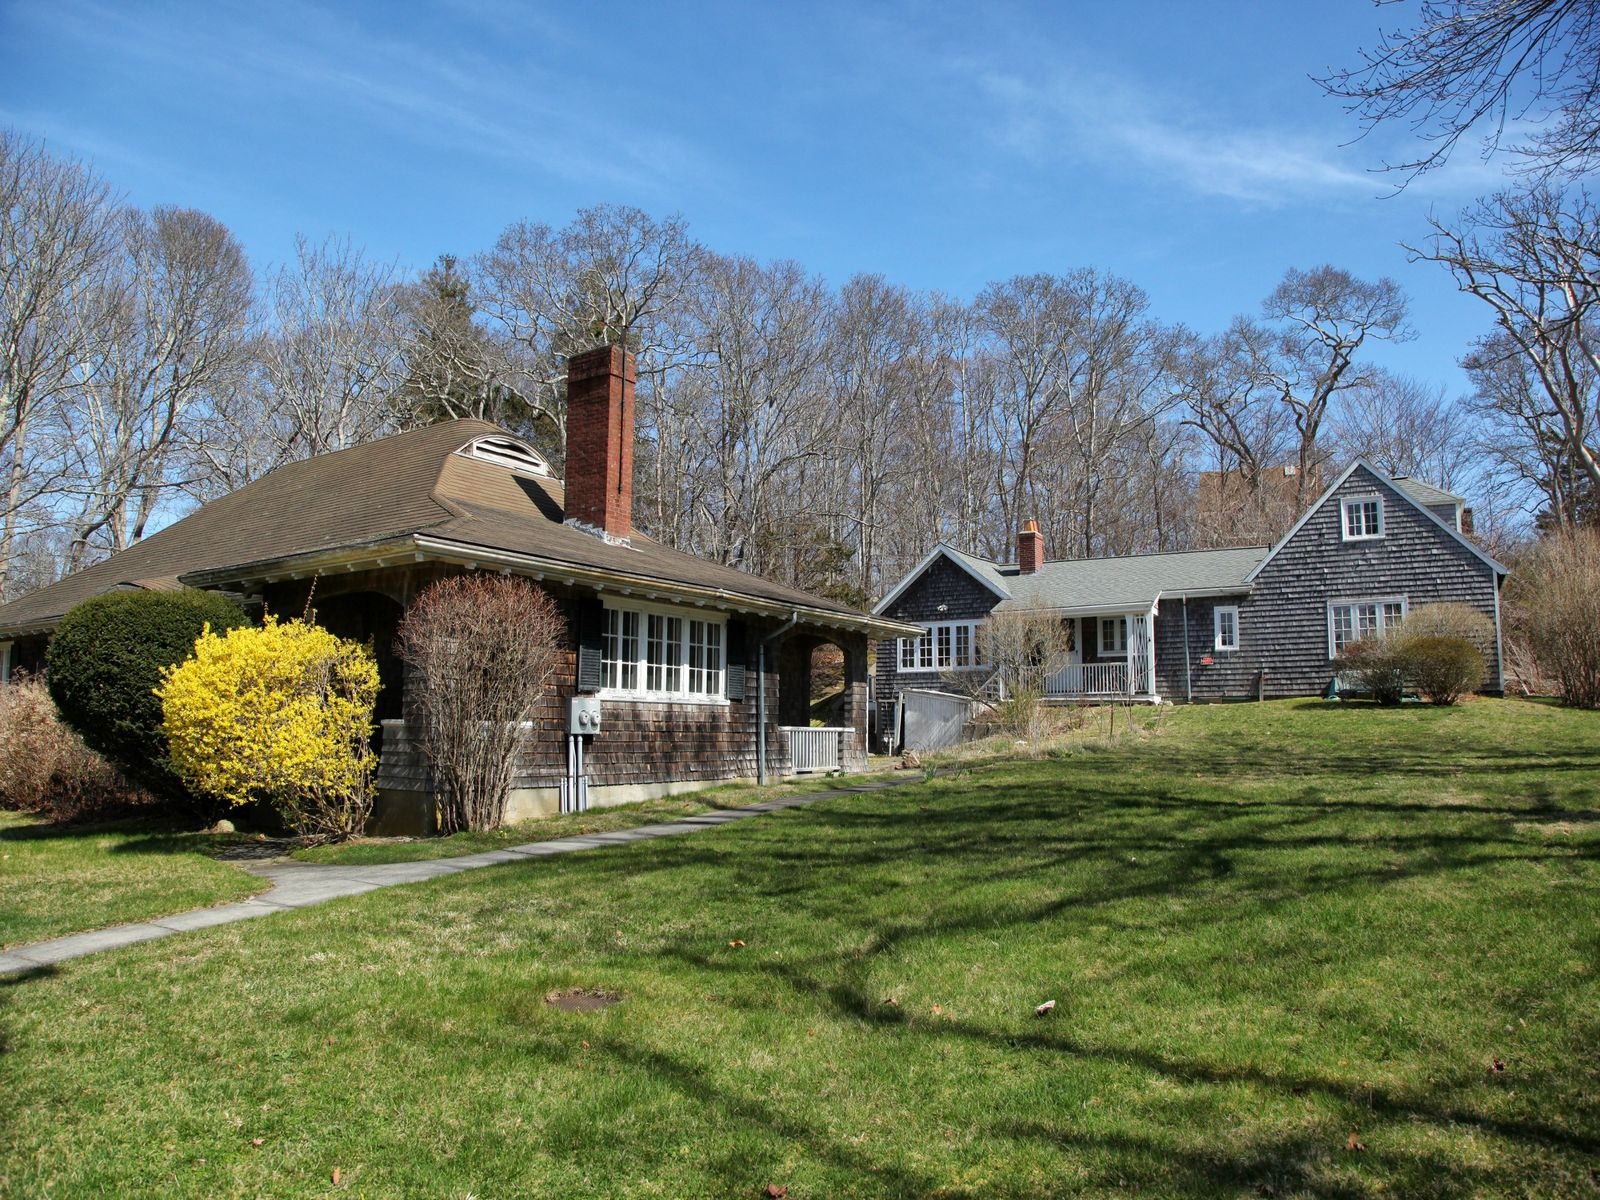 Unique Property with Buzzards Bay Views, Falmouth MA Single Family Home - Cape Cod Real Estate